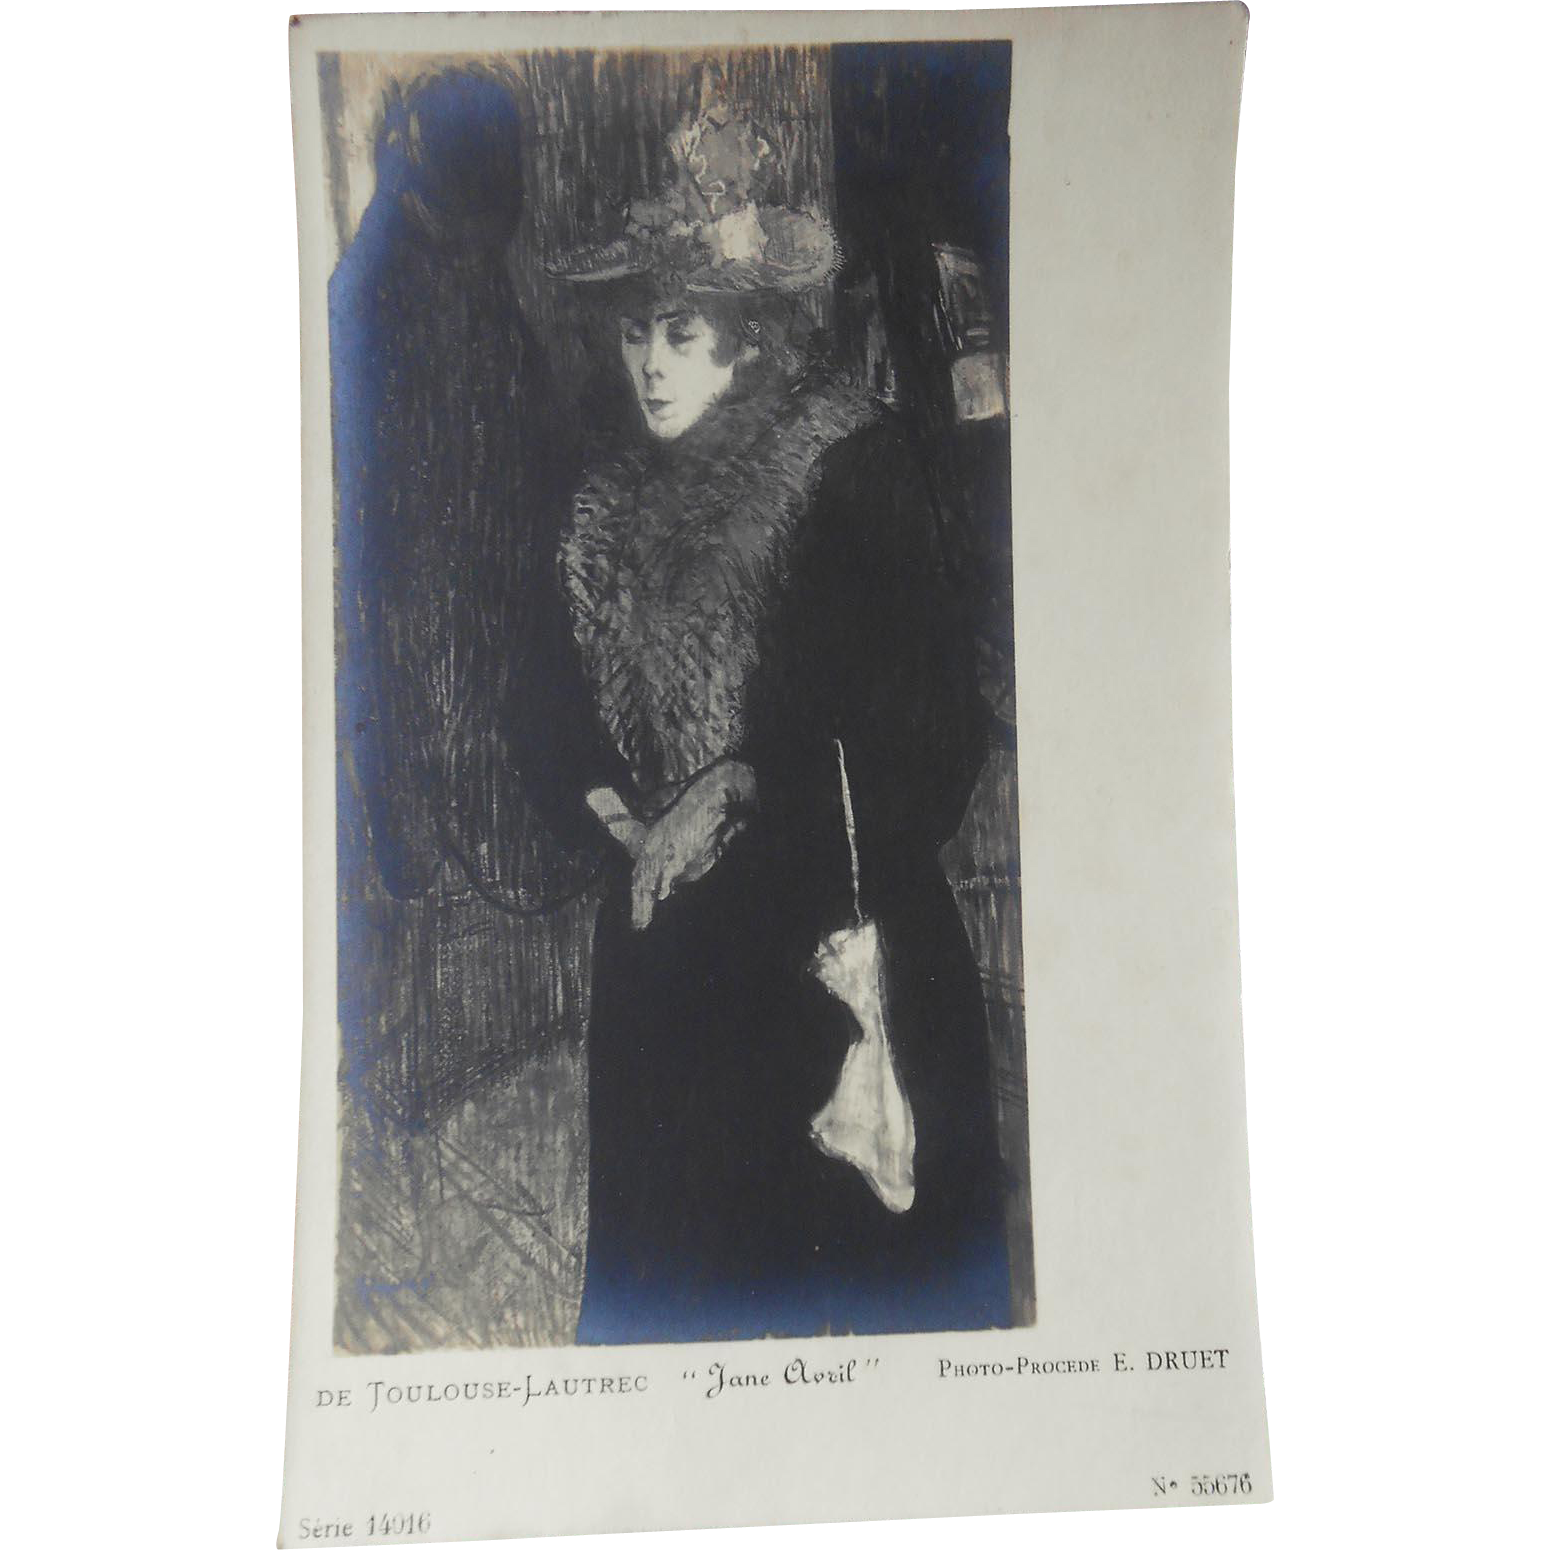 Toulouse-Lautrec's Jane Avril Reproduction by Renown Parisian Gallery Owner and Photographer Eugène Druet